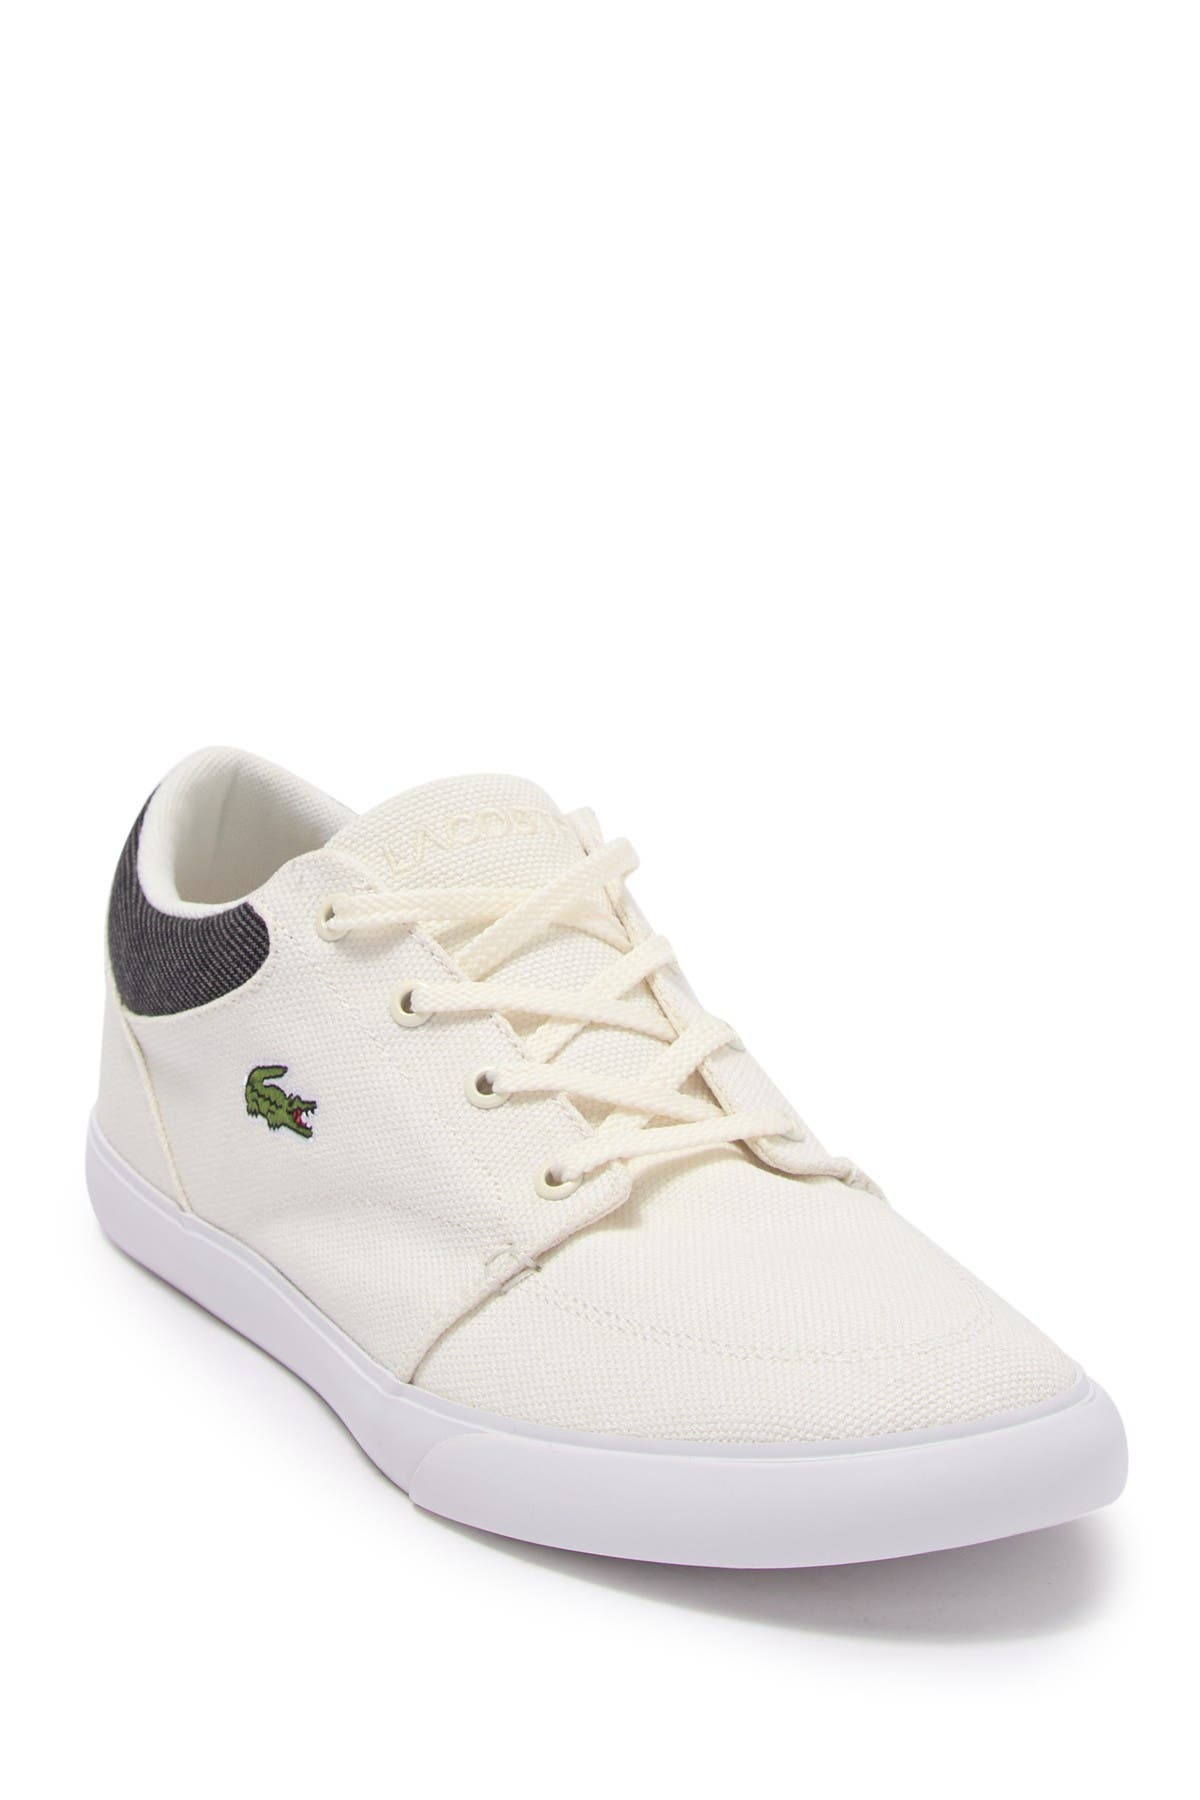 Image of Lacoste Bayliss Sneaker